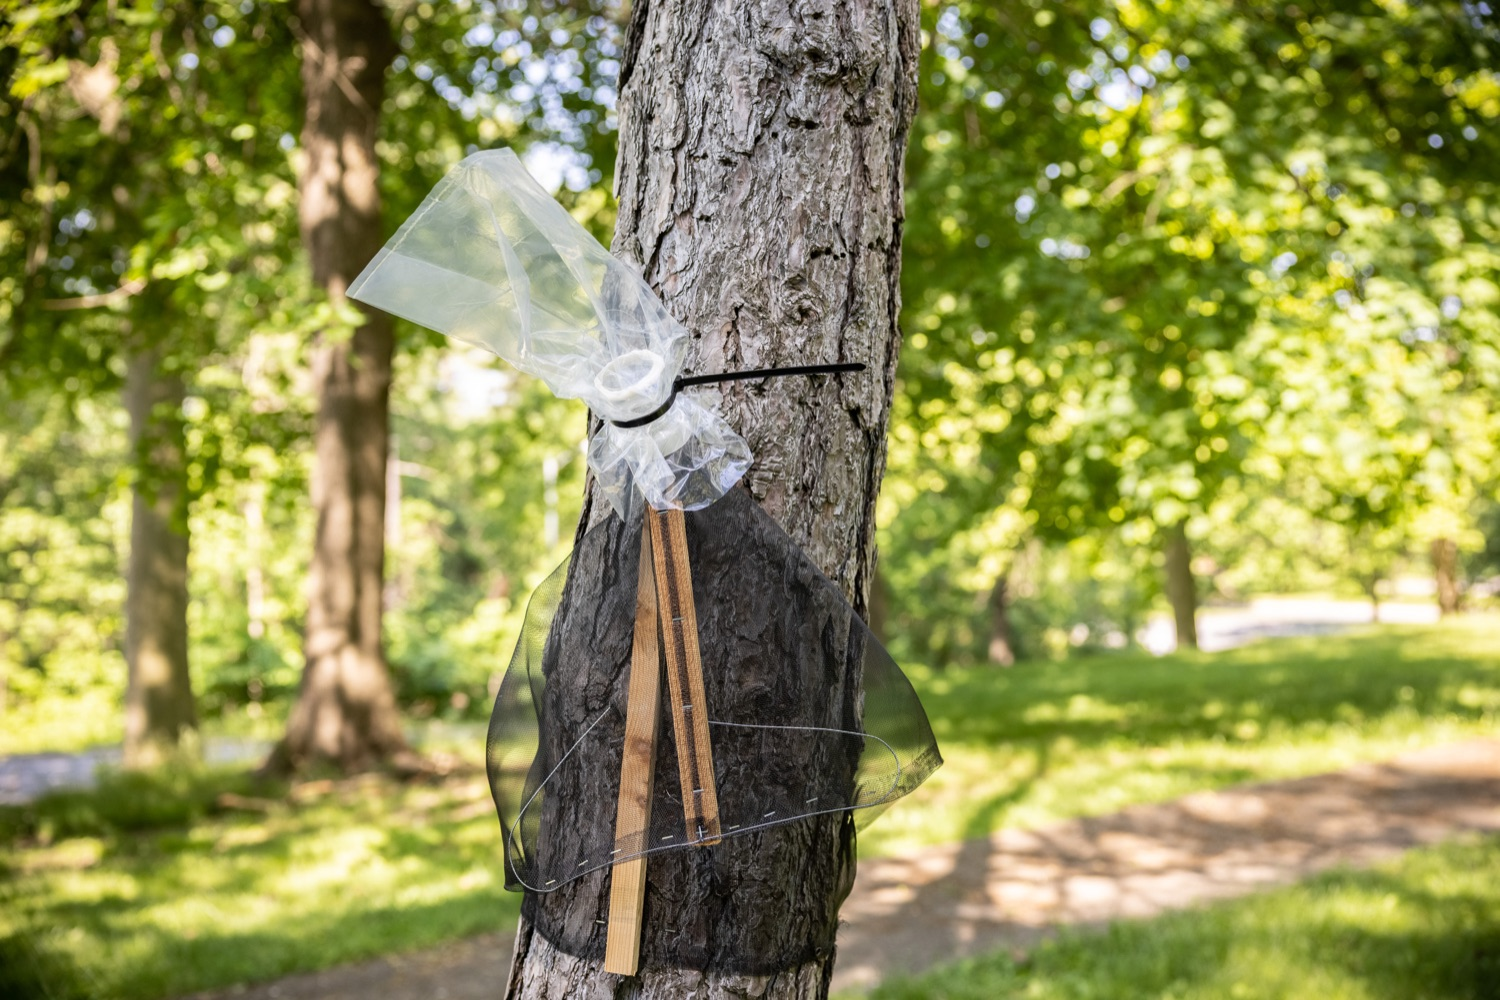 """<a href=""""https://filesource.wostreaming.net/commonwealthofpa/photo/18762_agric_slftrap_dz_005.jpg"""" target=""""_blank"""">⇣Download Photo<br></a>A circle trap deployed on a tree. Today in Harrisburg, a specialist from the PA Department of Agriculture demonstrated how homeowners can use a circle trap to eliminate large numbers of destructive Spotted Lanternflies without harming beneficial pollinators or small animals.   Harrisburg, PA  May 21, 2021"""